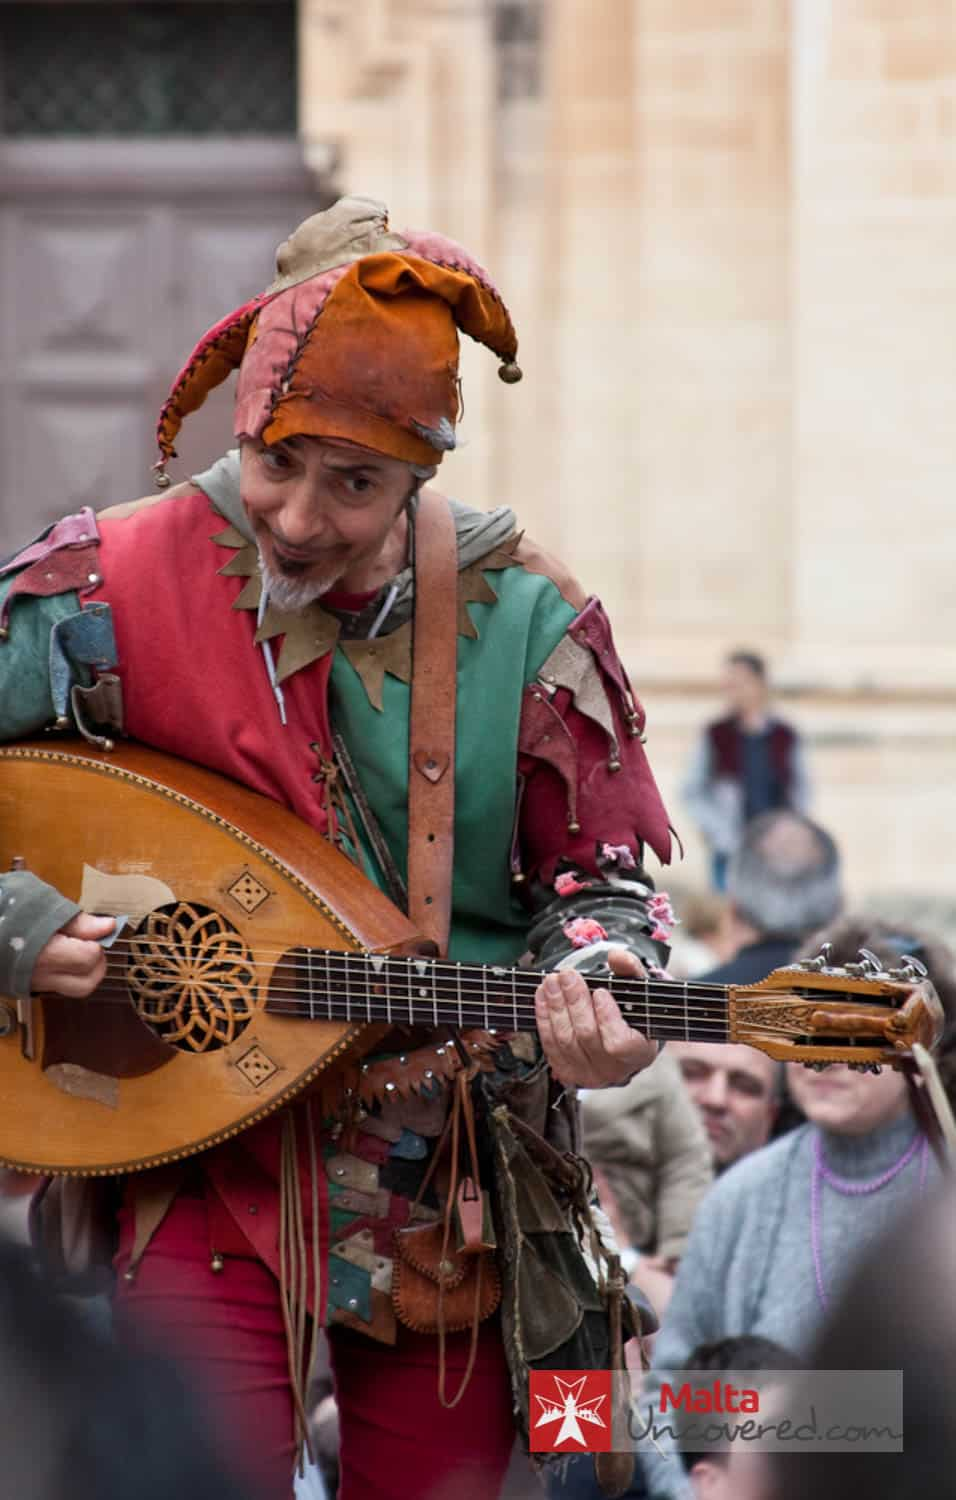 A (re-enacting) jester entertains the crowd at Medieval Mdina